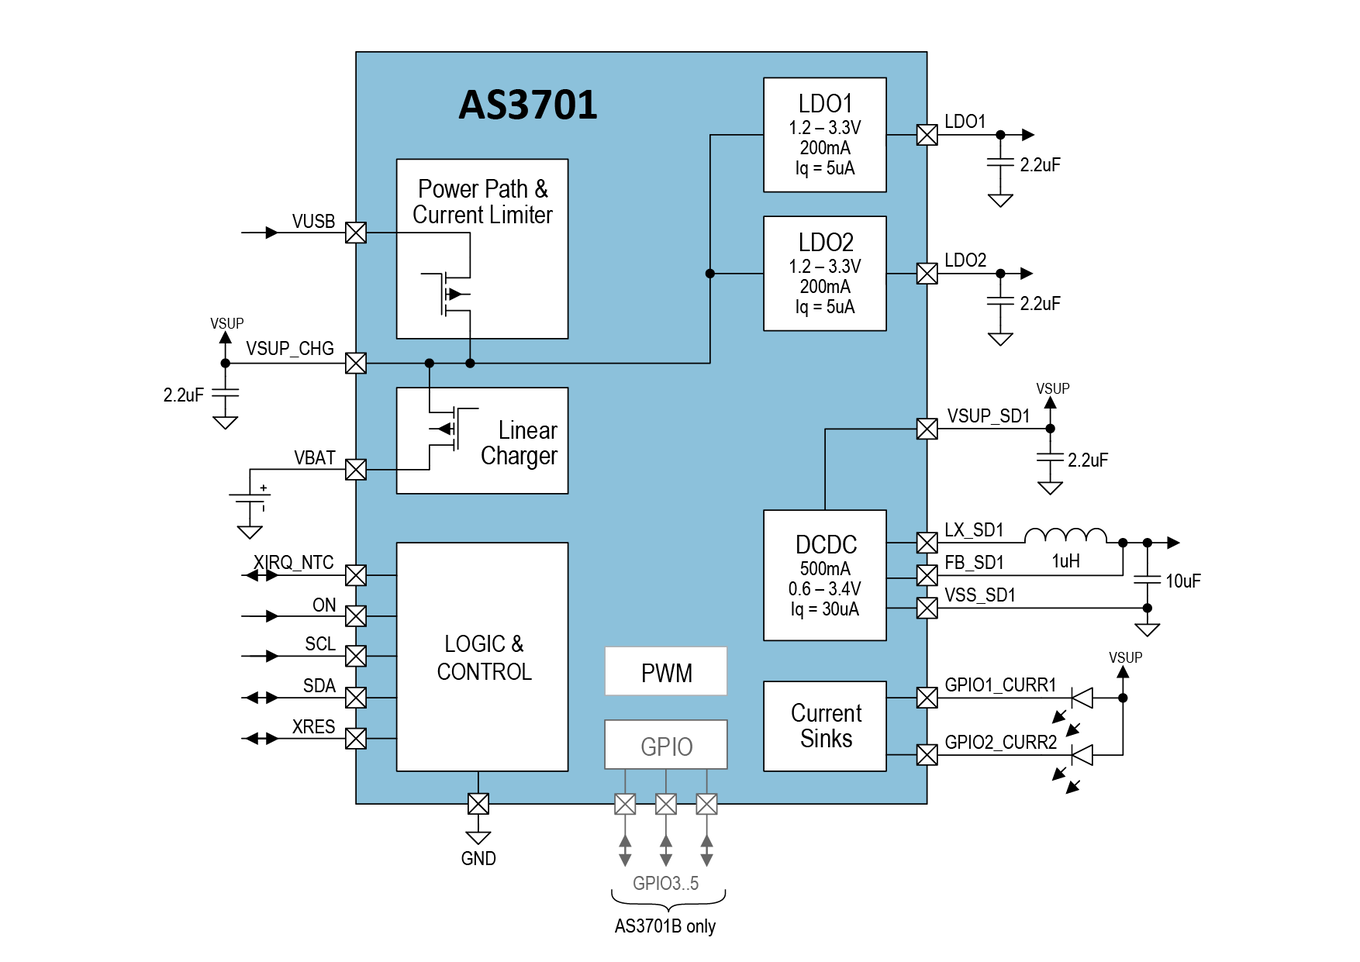 AS3701 Block Diagram